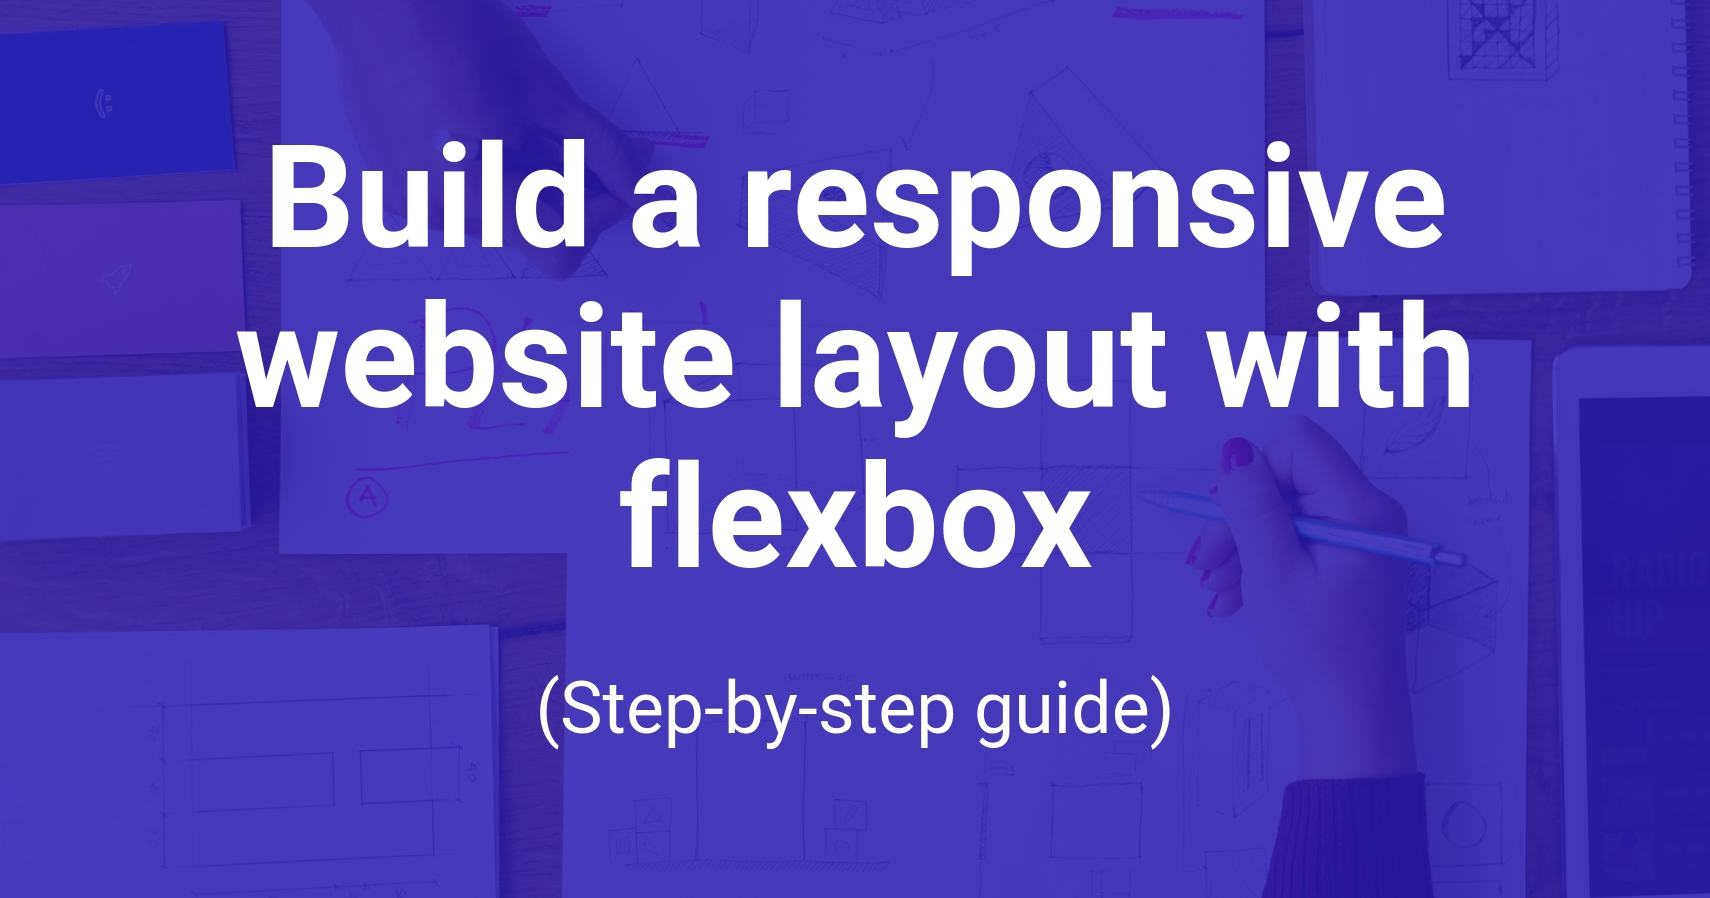 Build a responsive website layout with flexbox